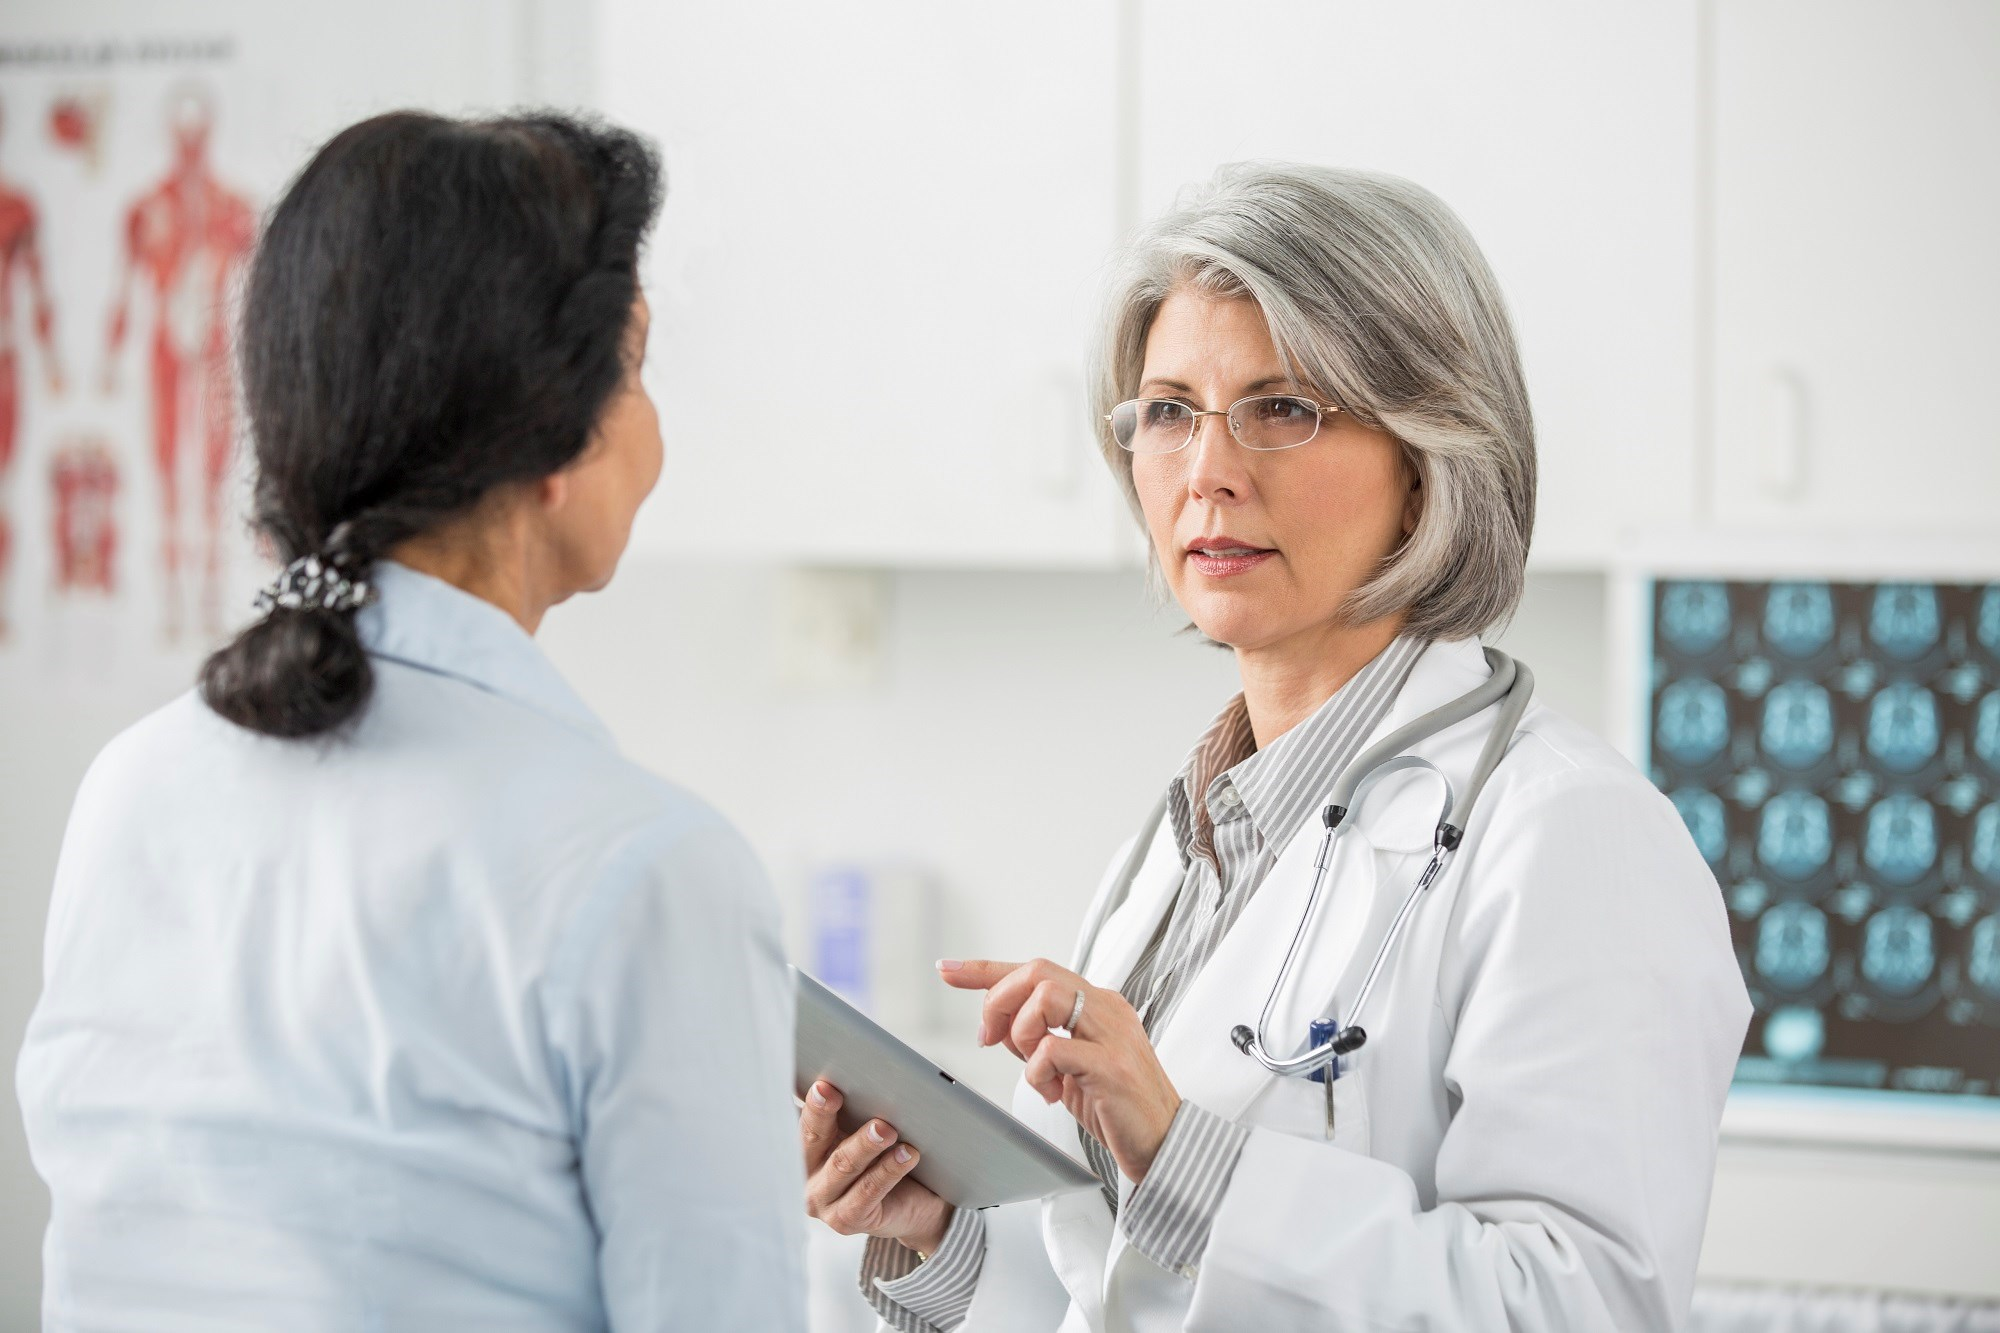 Severe vulvovaginal atrophy (VVA) symptoms are associated with worse quality of life in postmenopausal women.